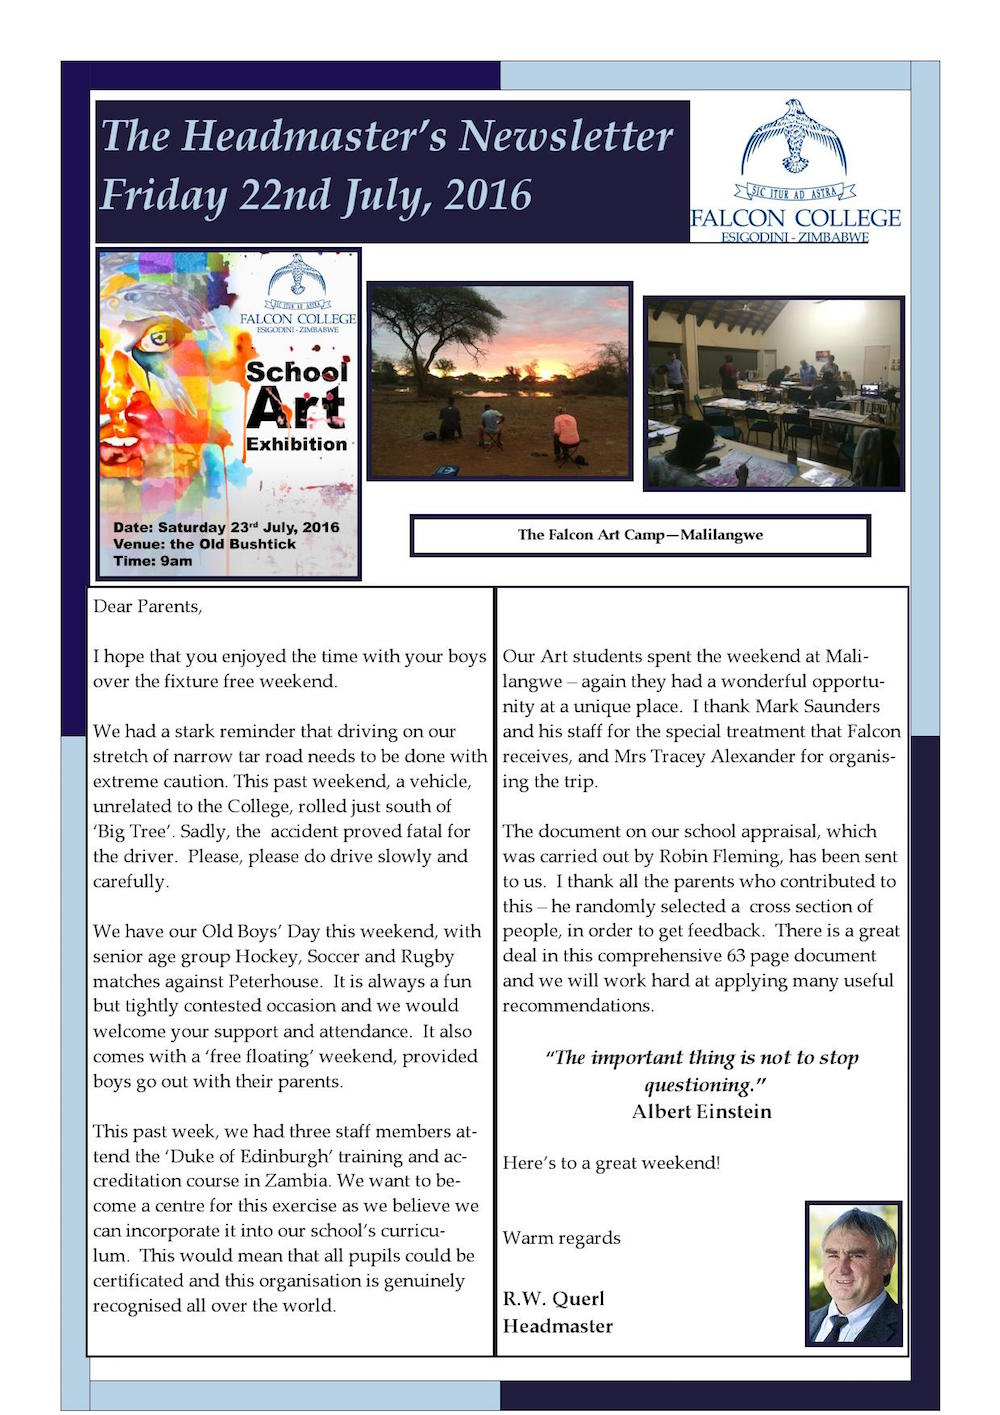 Headmaster's Newsletter Friday 22nd July 2016 edited_000001